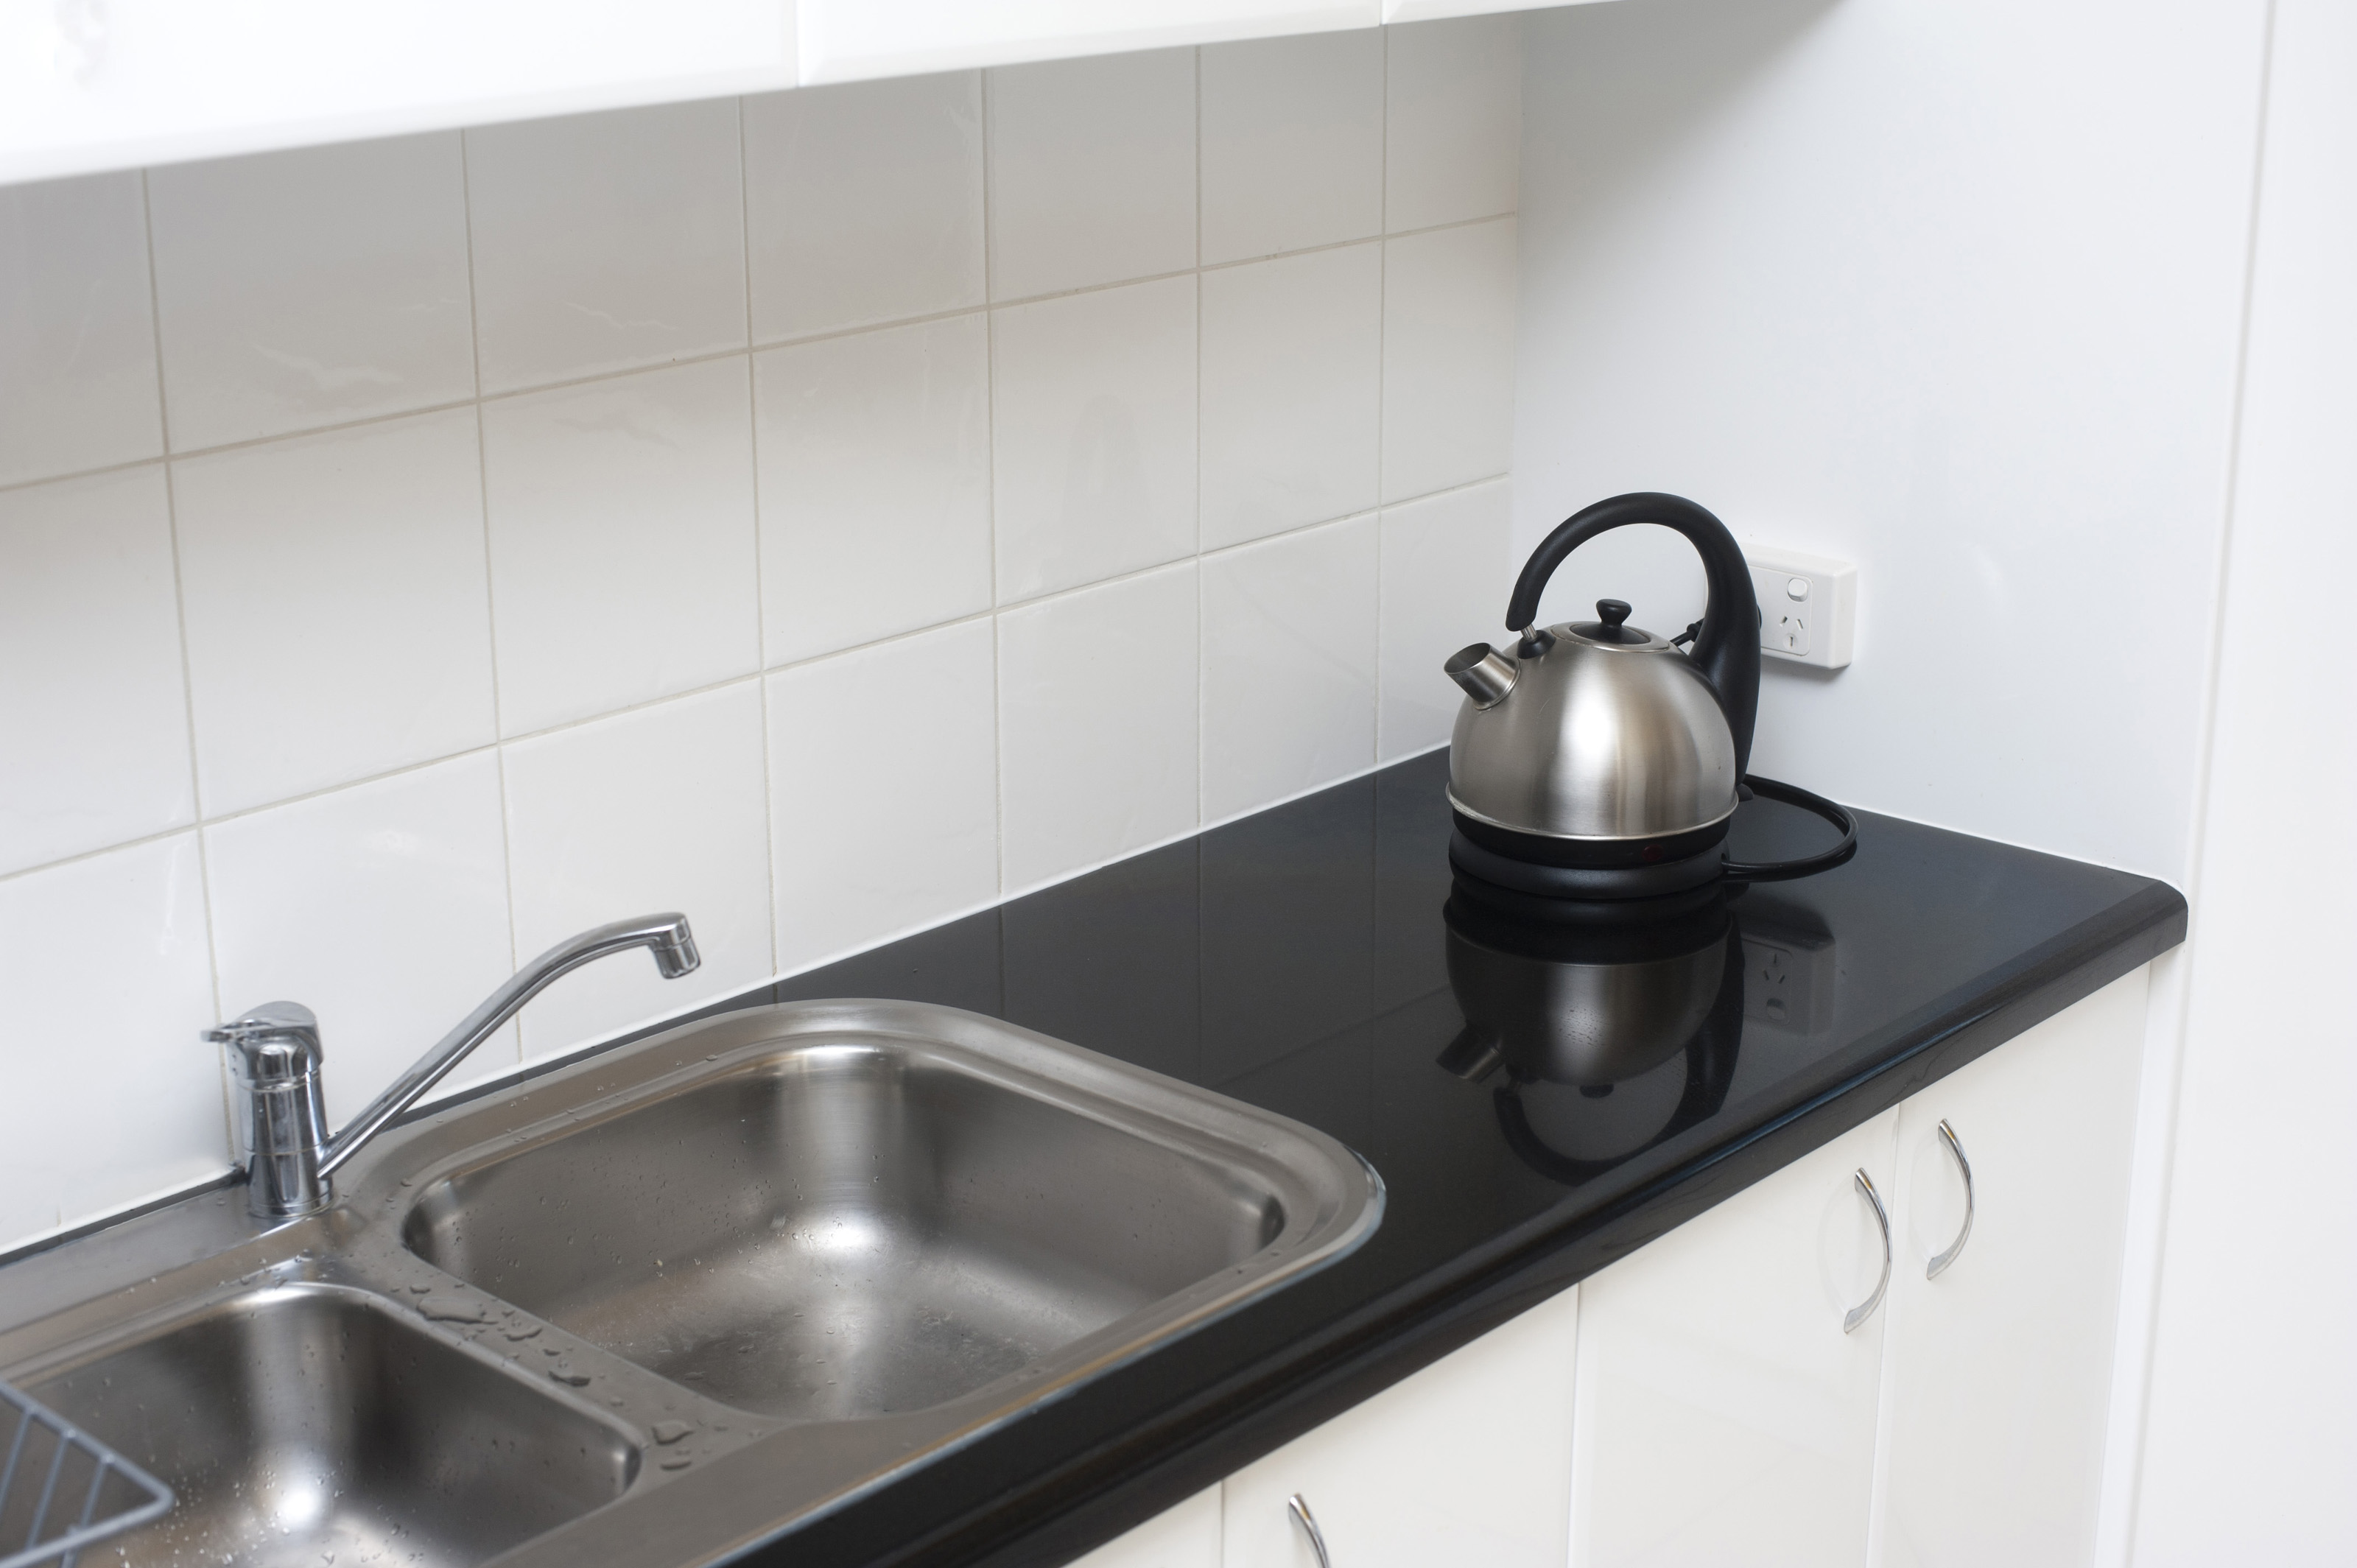 Small kitchen with double stainless steel sink unit, black countertop and  white tiles as a